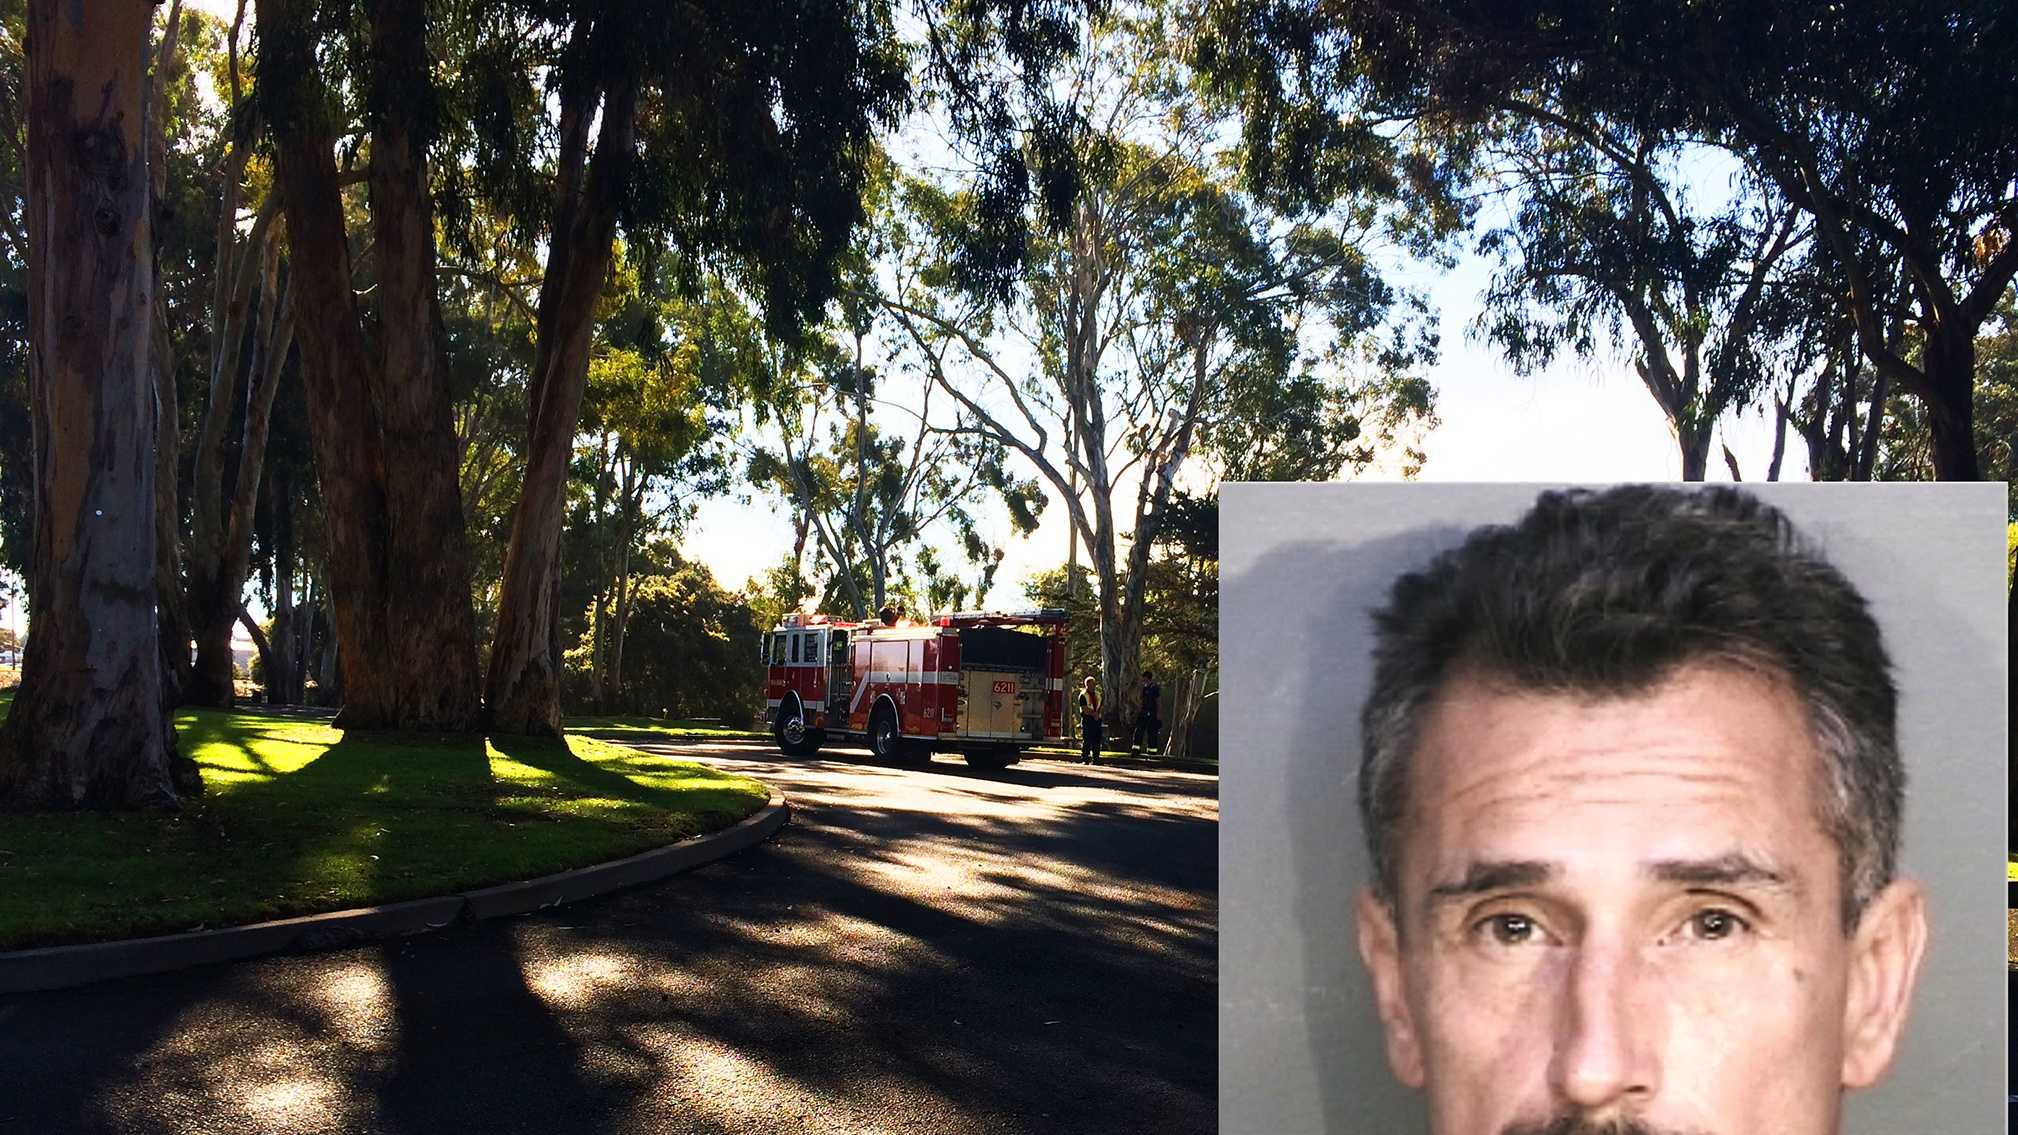 Steven Mark Palmer is accused of starting a fire at Laguna Grande Park in an attempt to kill someone, according to Seaside police.